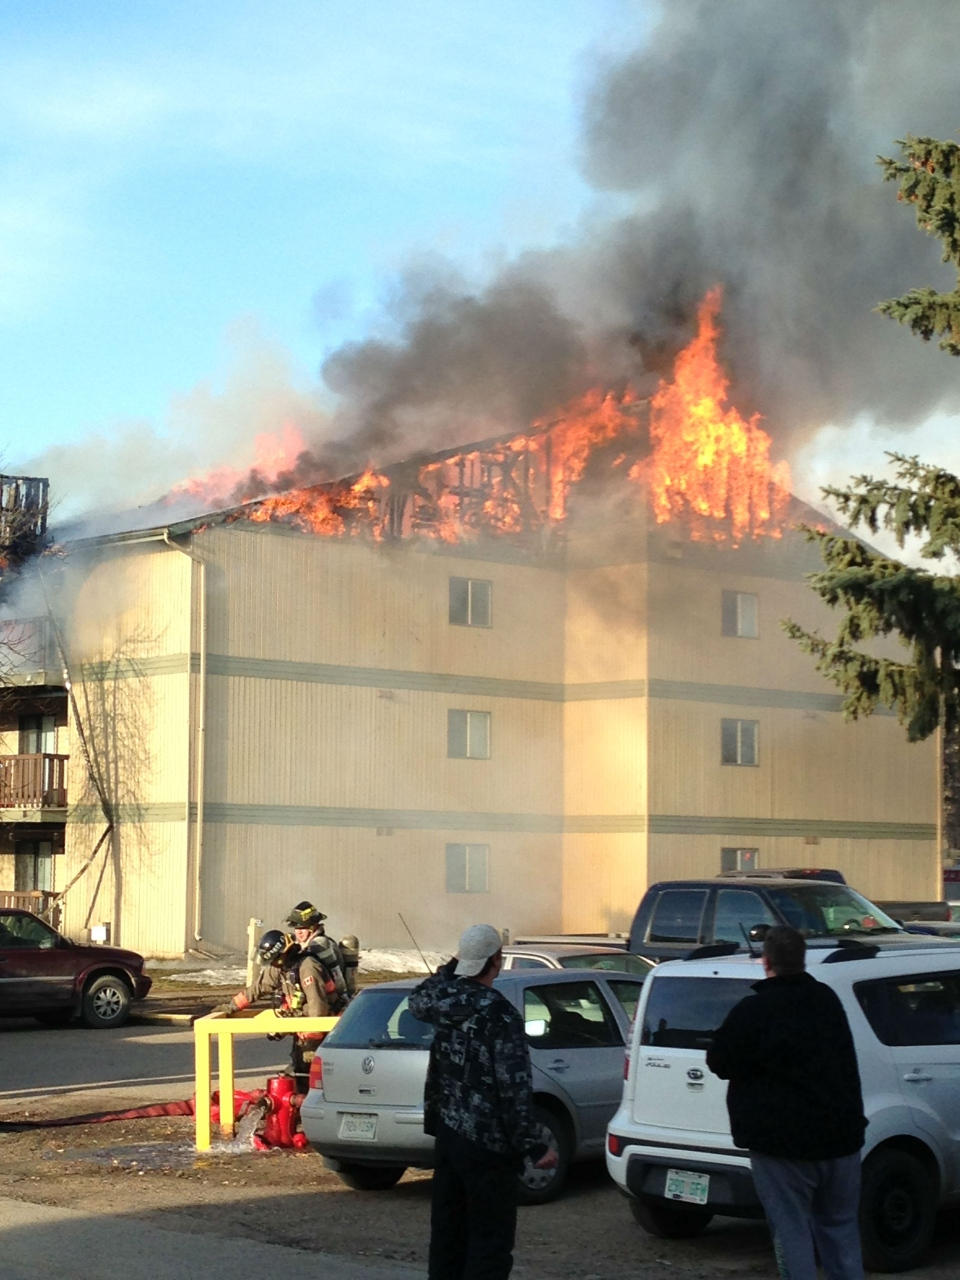 Saskatoon firefighters were on the scene Thursday morning at an apartment complex near Eighth Street and McKercher Avenue.